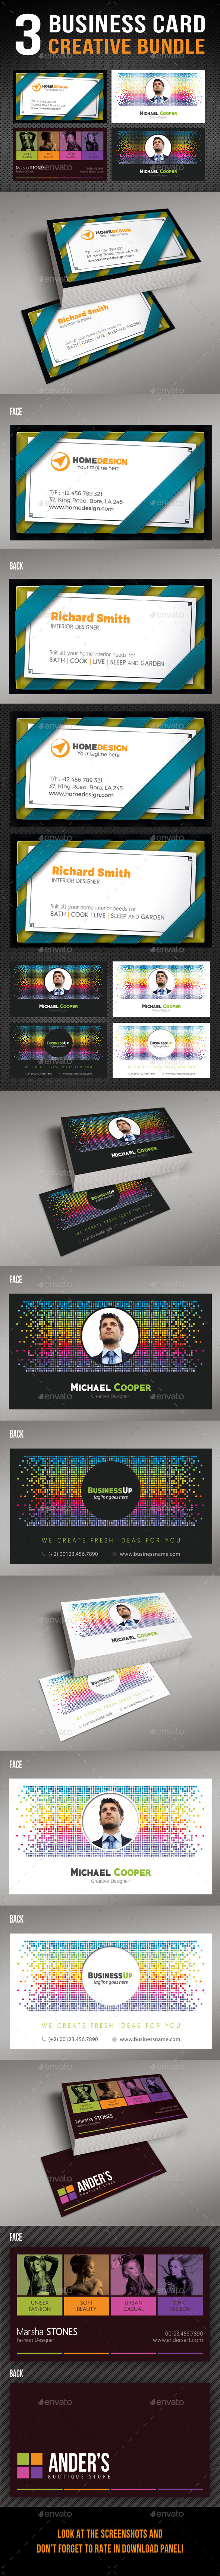 3 in 1 Creative Business Card Bundle - Creative Business Cards